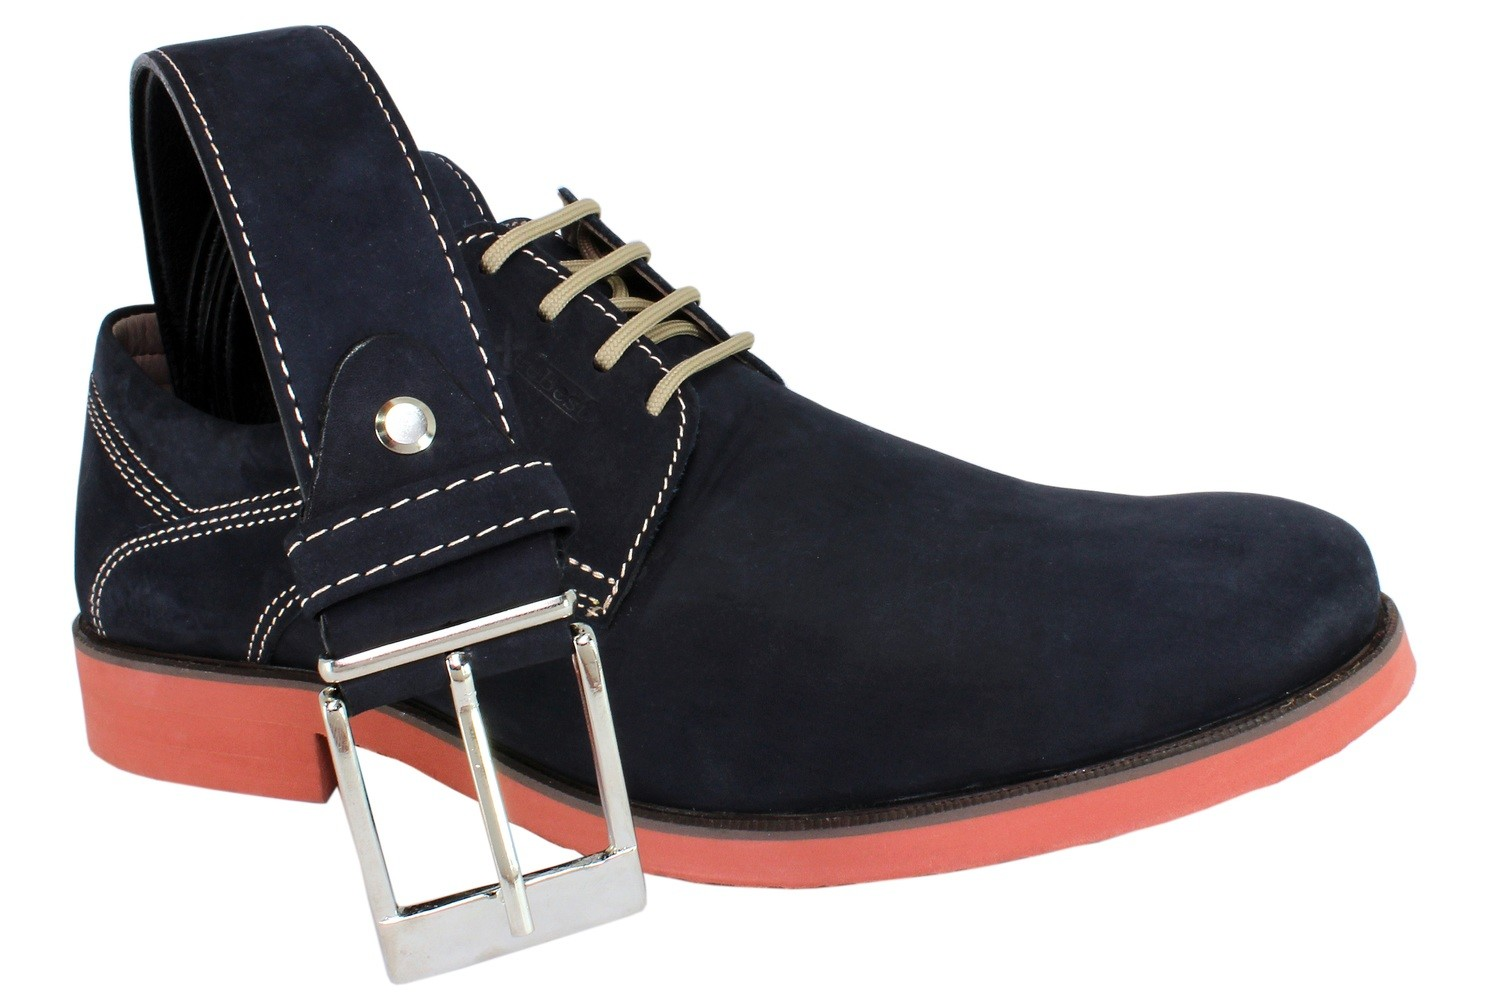 Mens Belt & Shoes Genuine Leather Blue - SUGGESTED RETAIL PRICE $75/sets - WHOLESALE PRICE $13.75/sets - Min purchase 20 sets